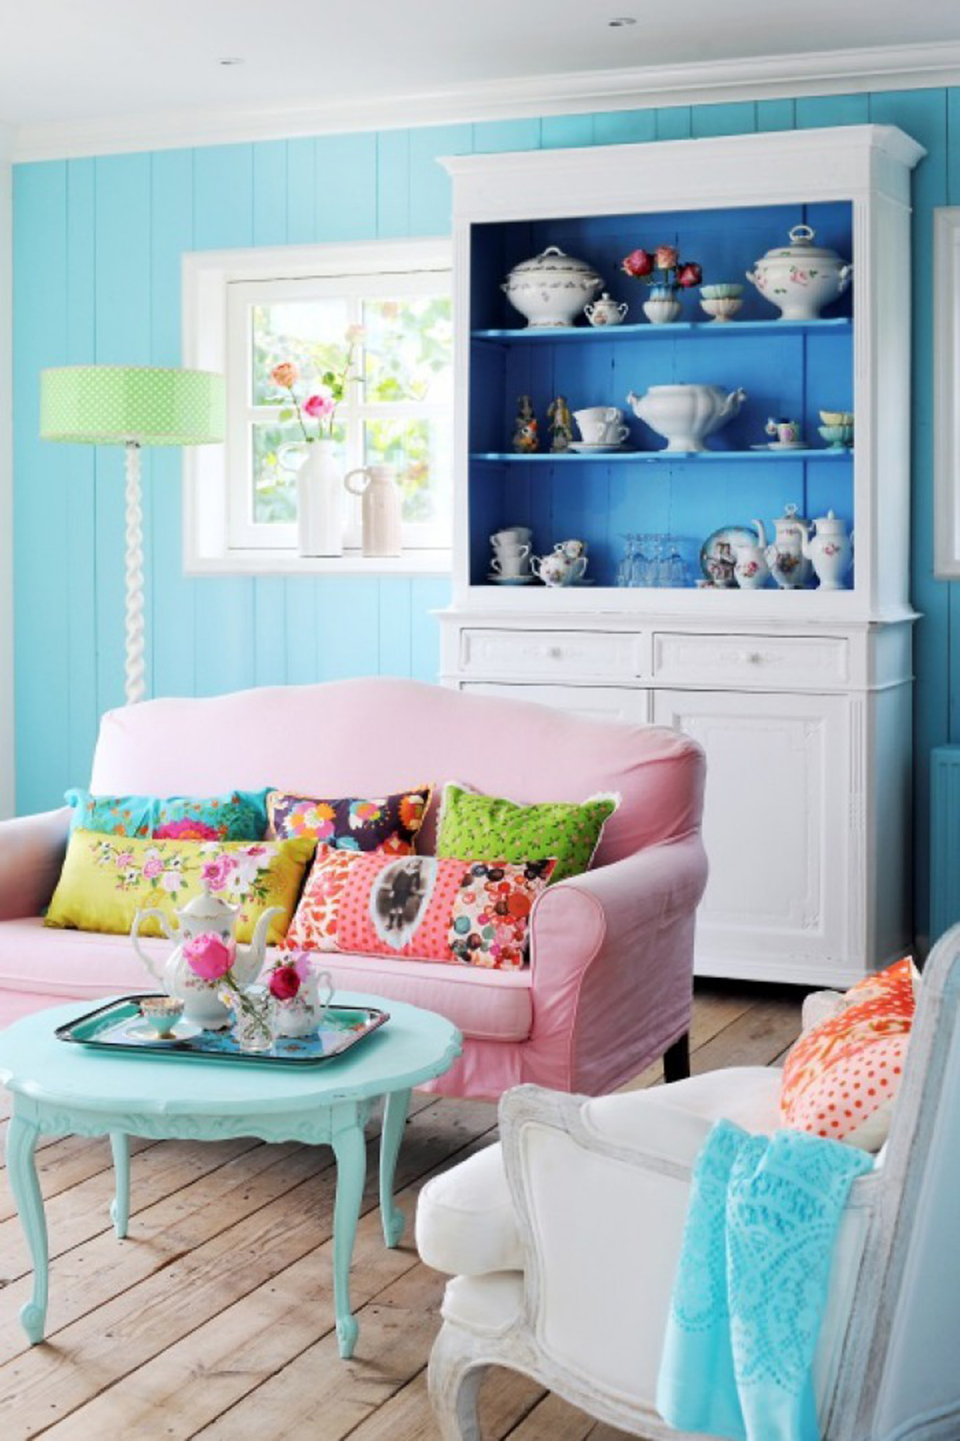 50 Best Small Living Room Design Ideas for 2016 on Small Living Room Ideas  id=85045